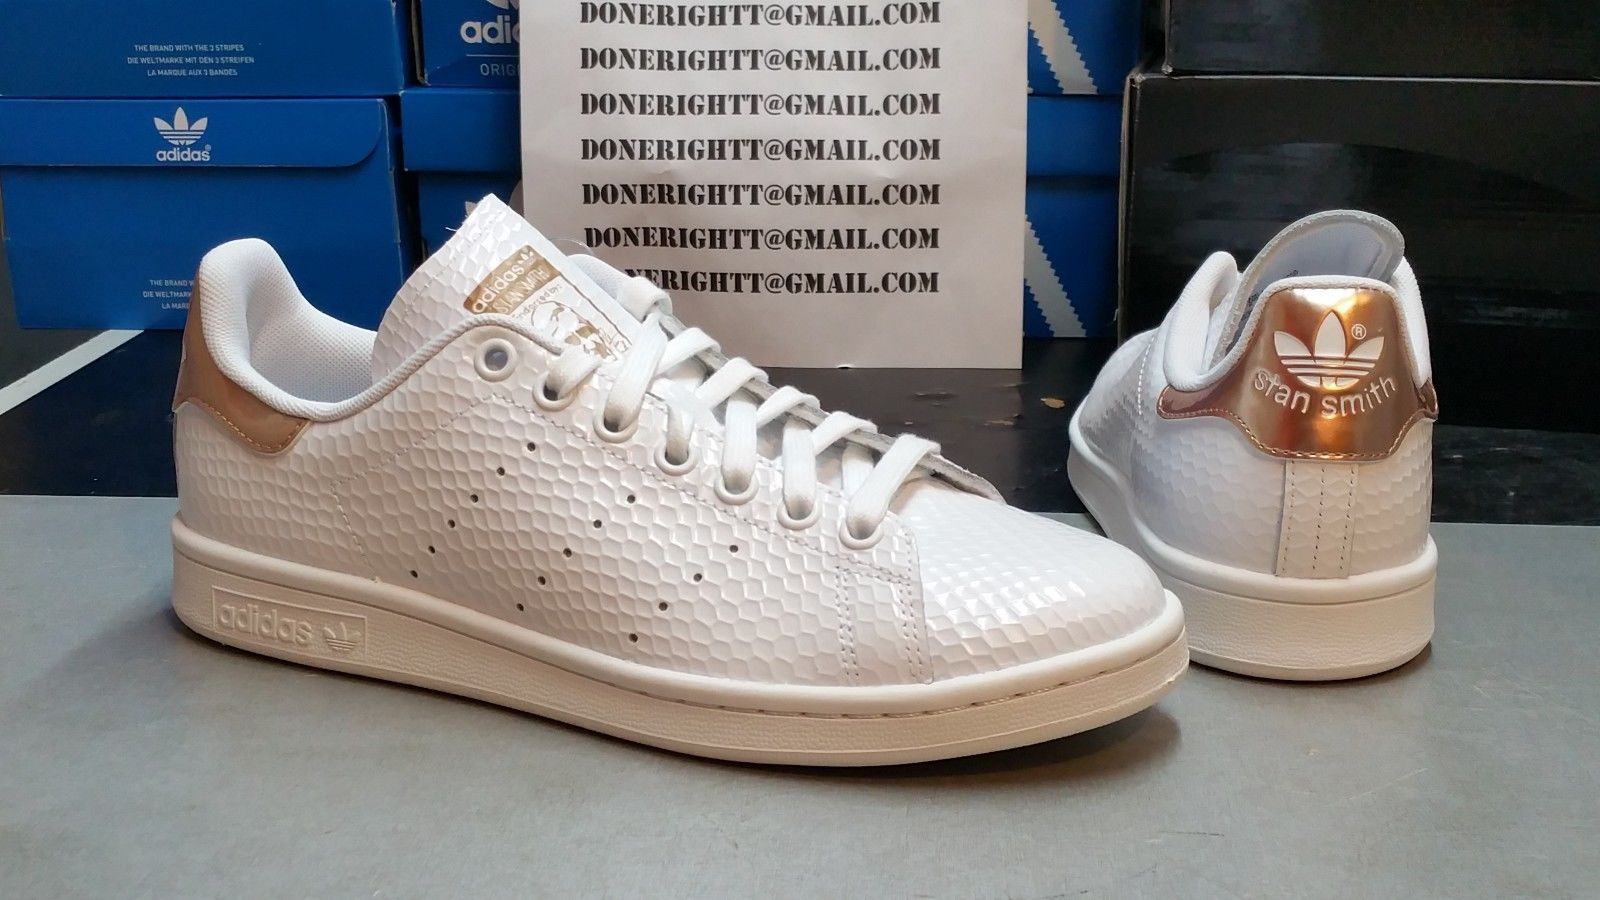 f2fd8a1b878d6 Womens Adidas Stan Smith Copper White Kettle Snakeskin Metallic Rose Gold  Yeezy | eBay